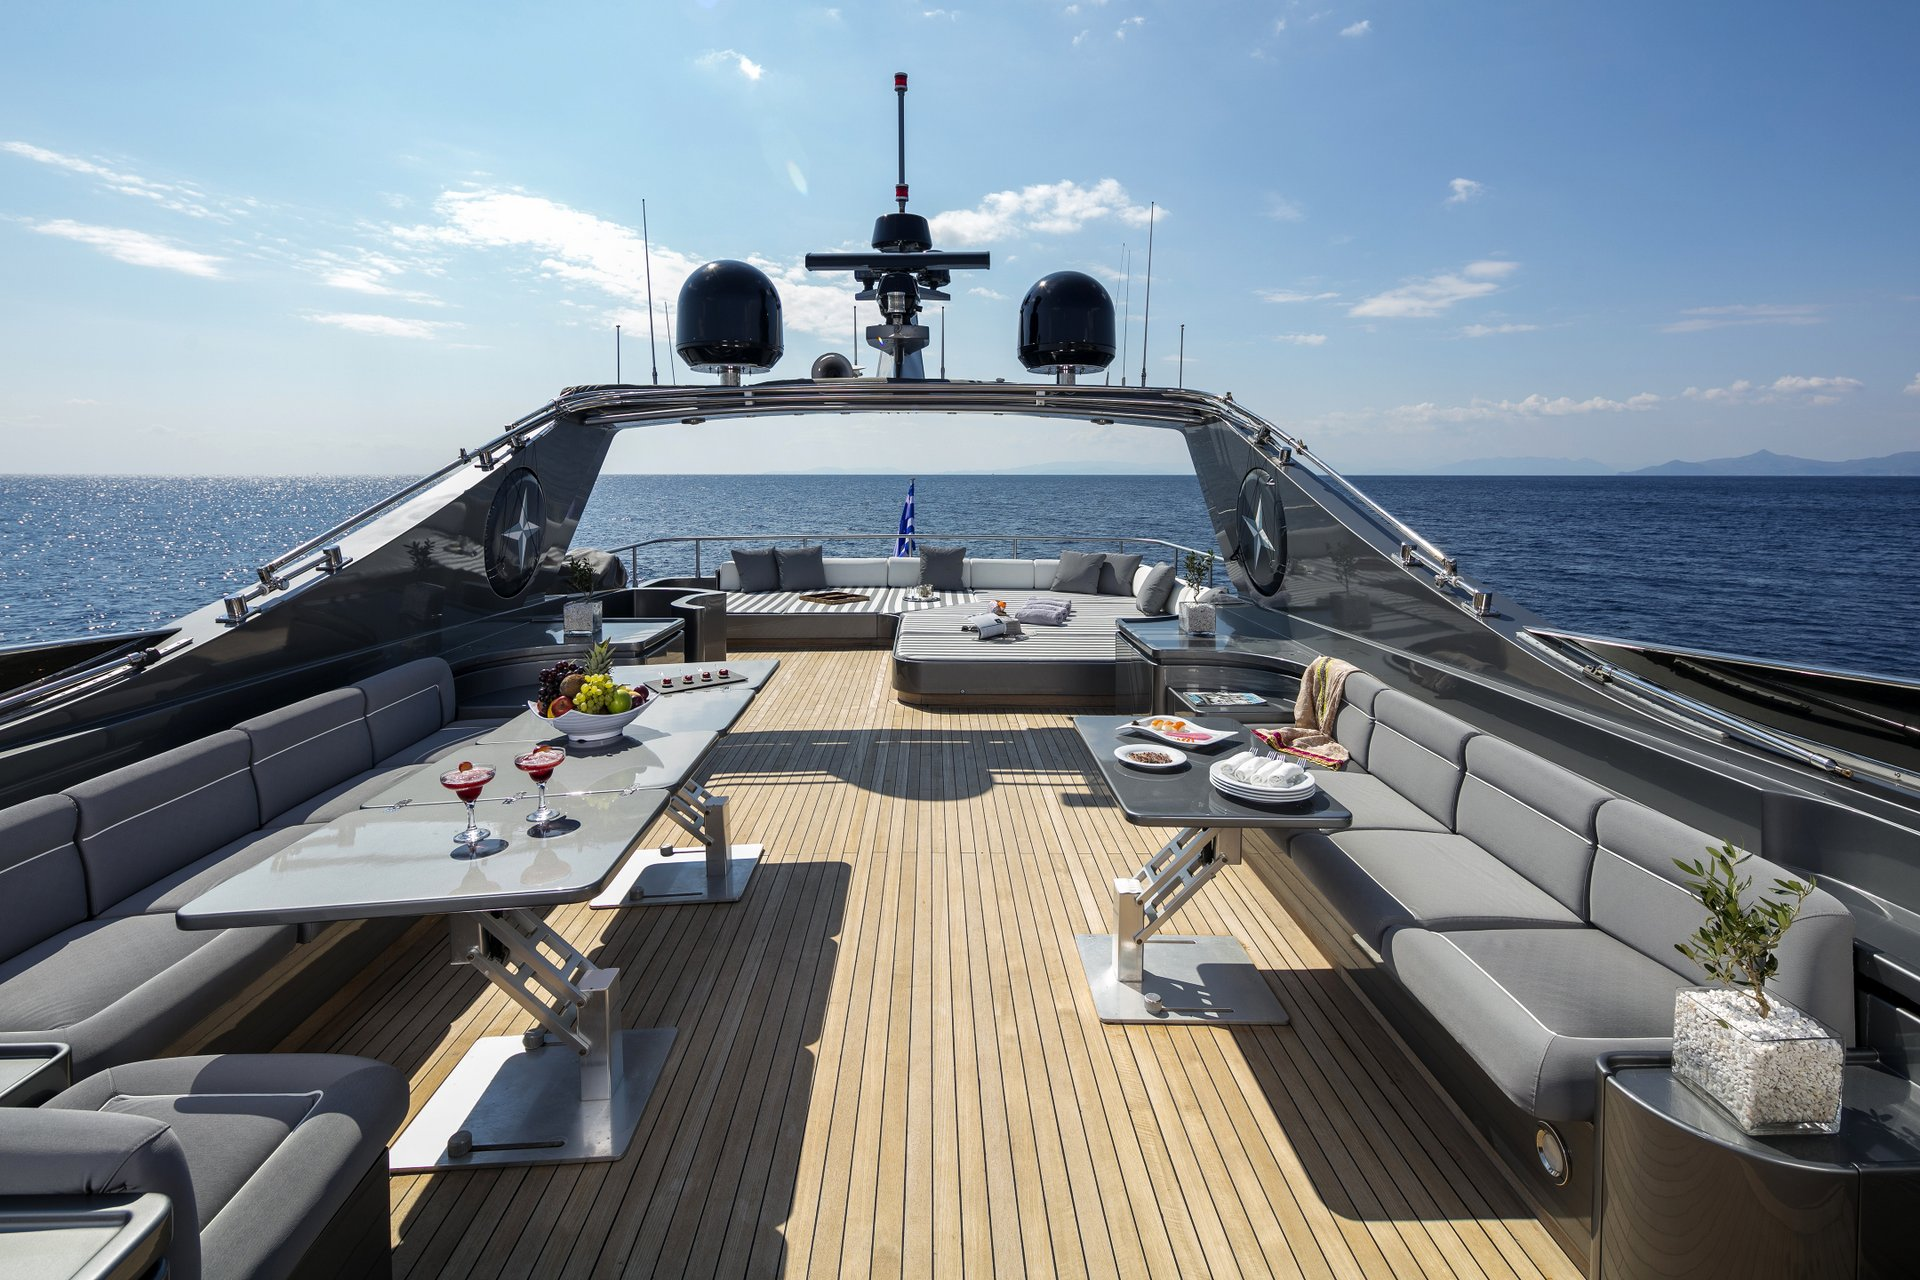 M/Y SUMMER DREAMS yacht for charter top deck